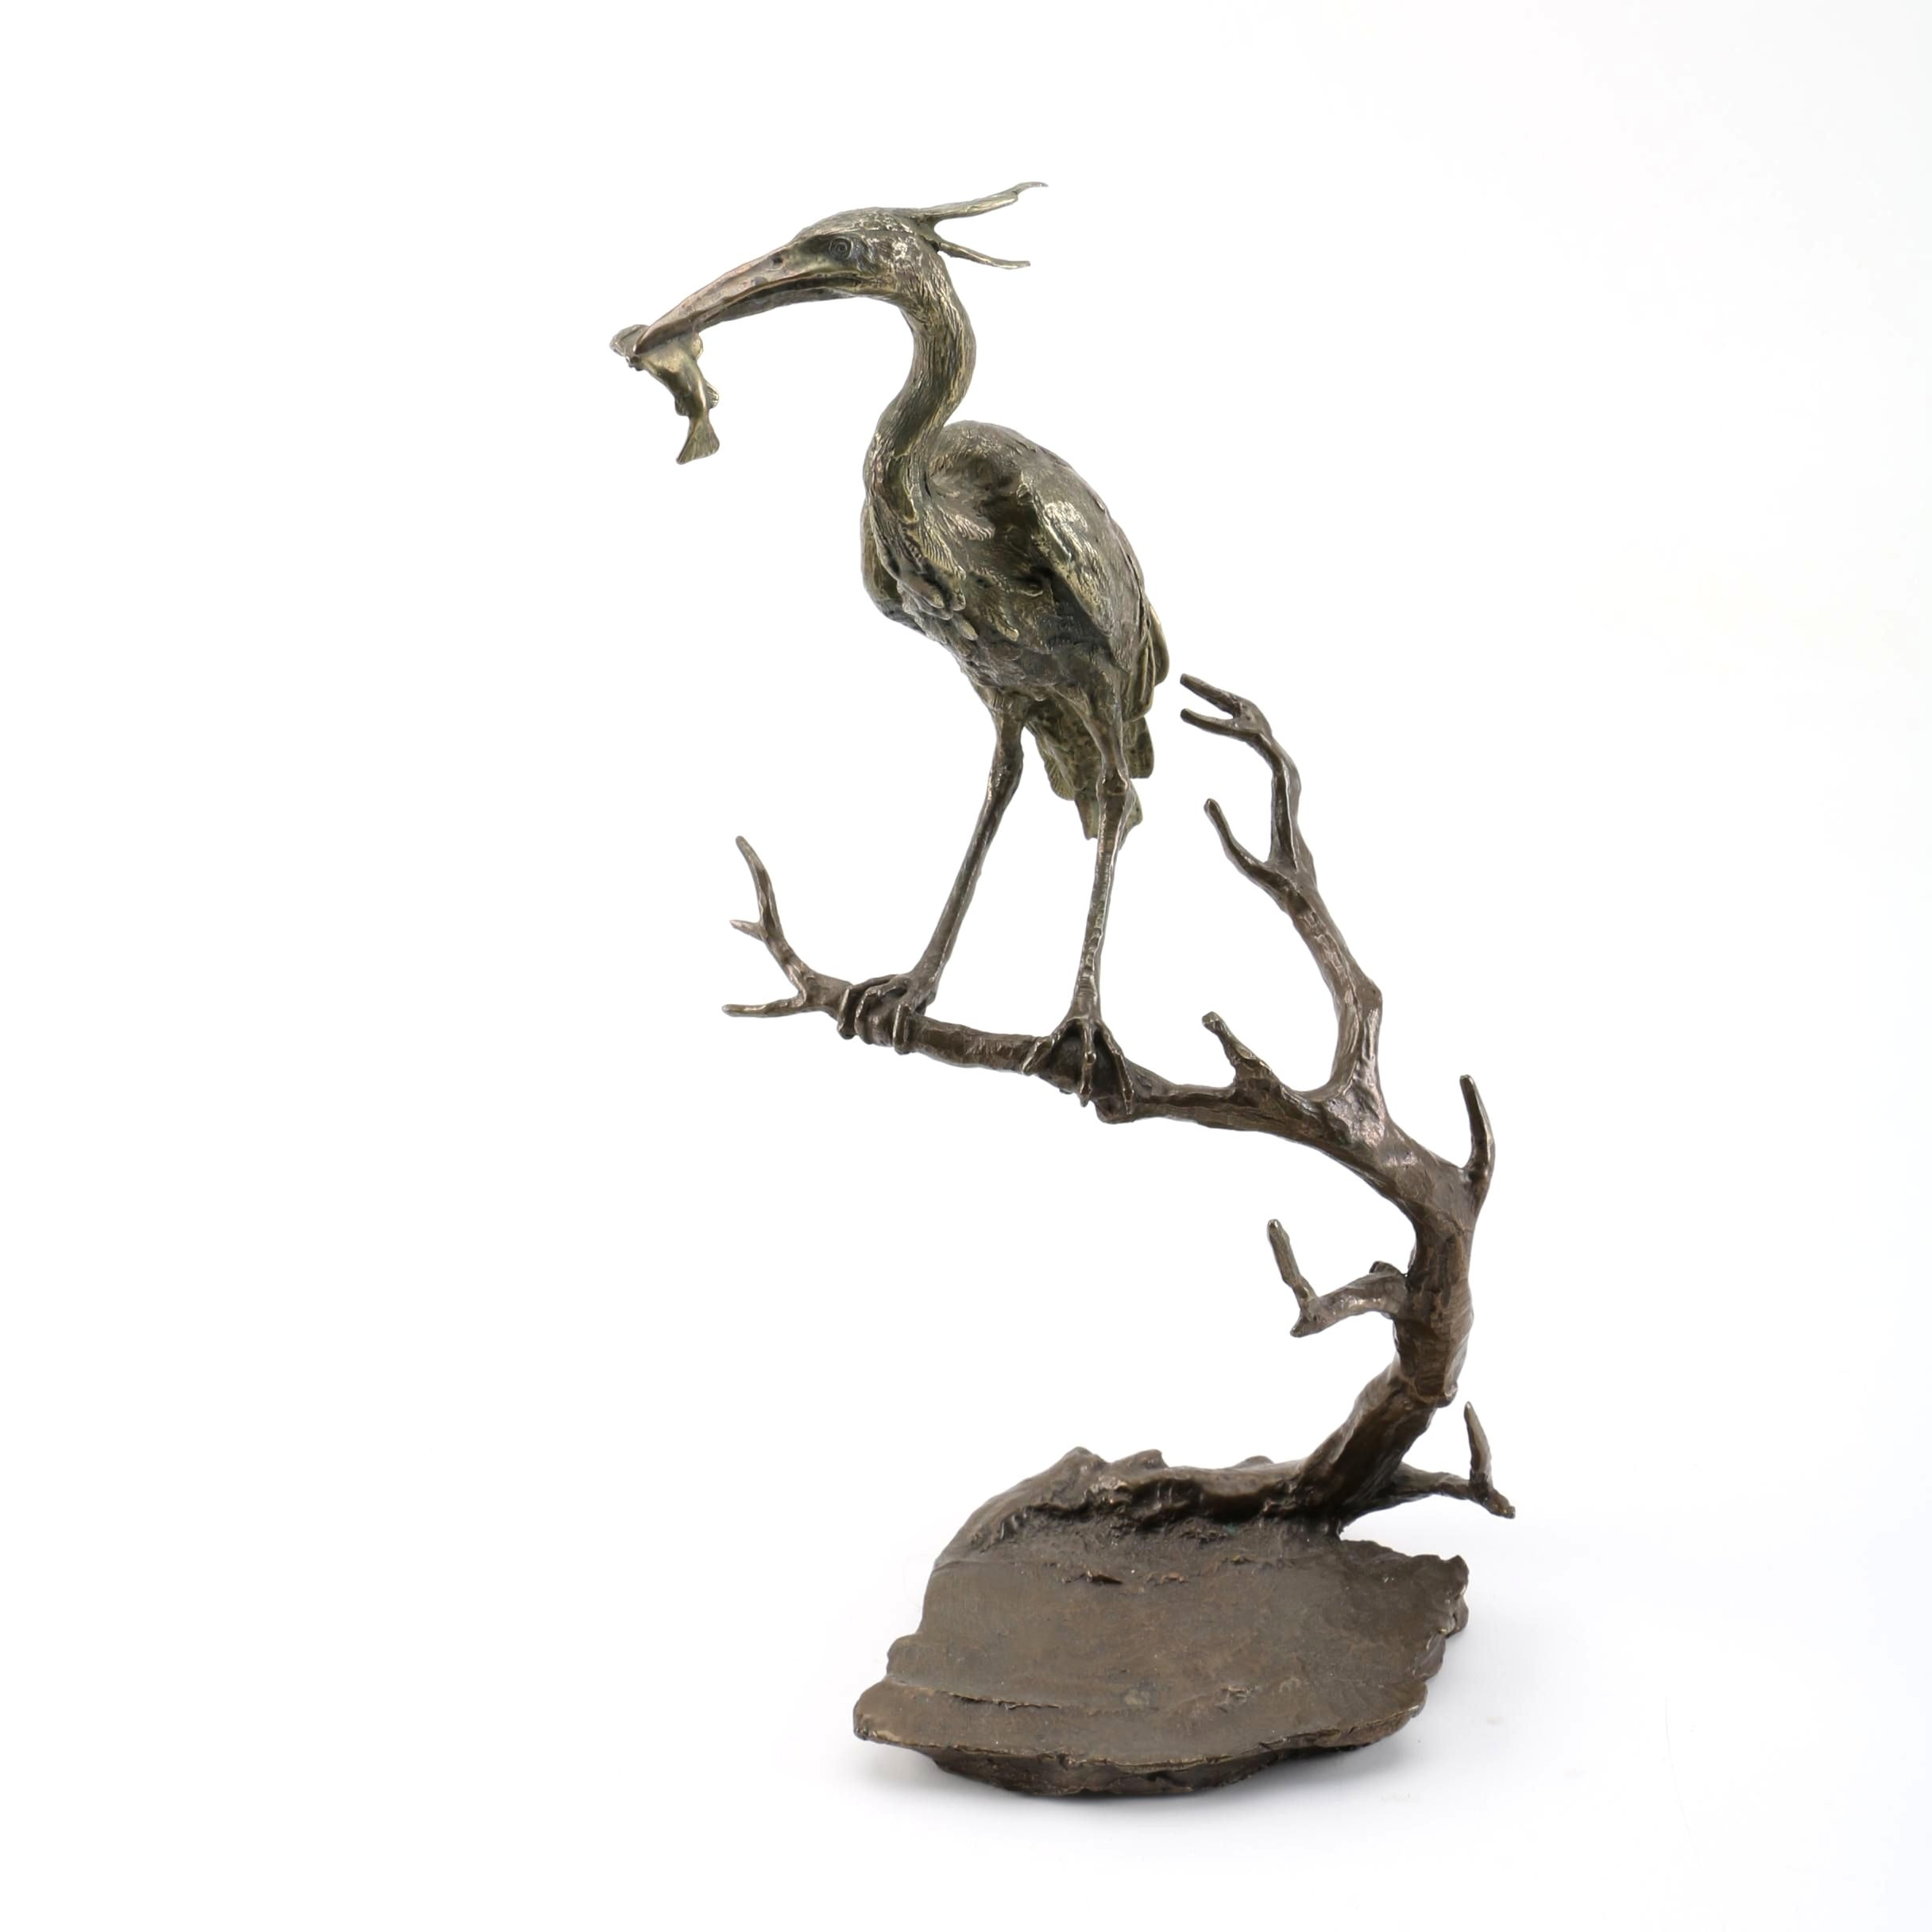 Mark Hopkins Limited Edition Sculpture of a Heron